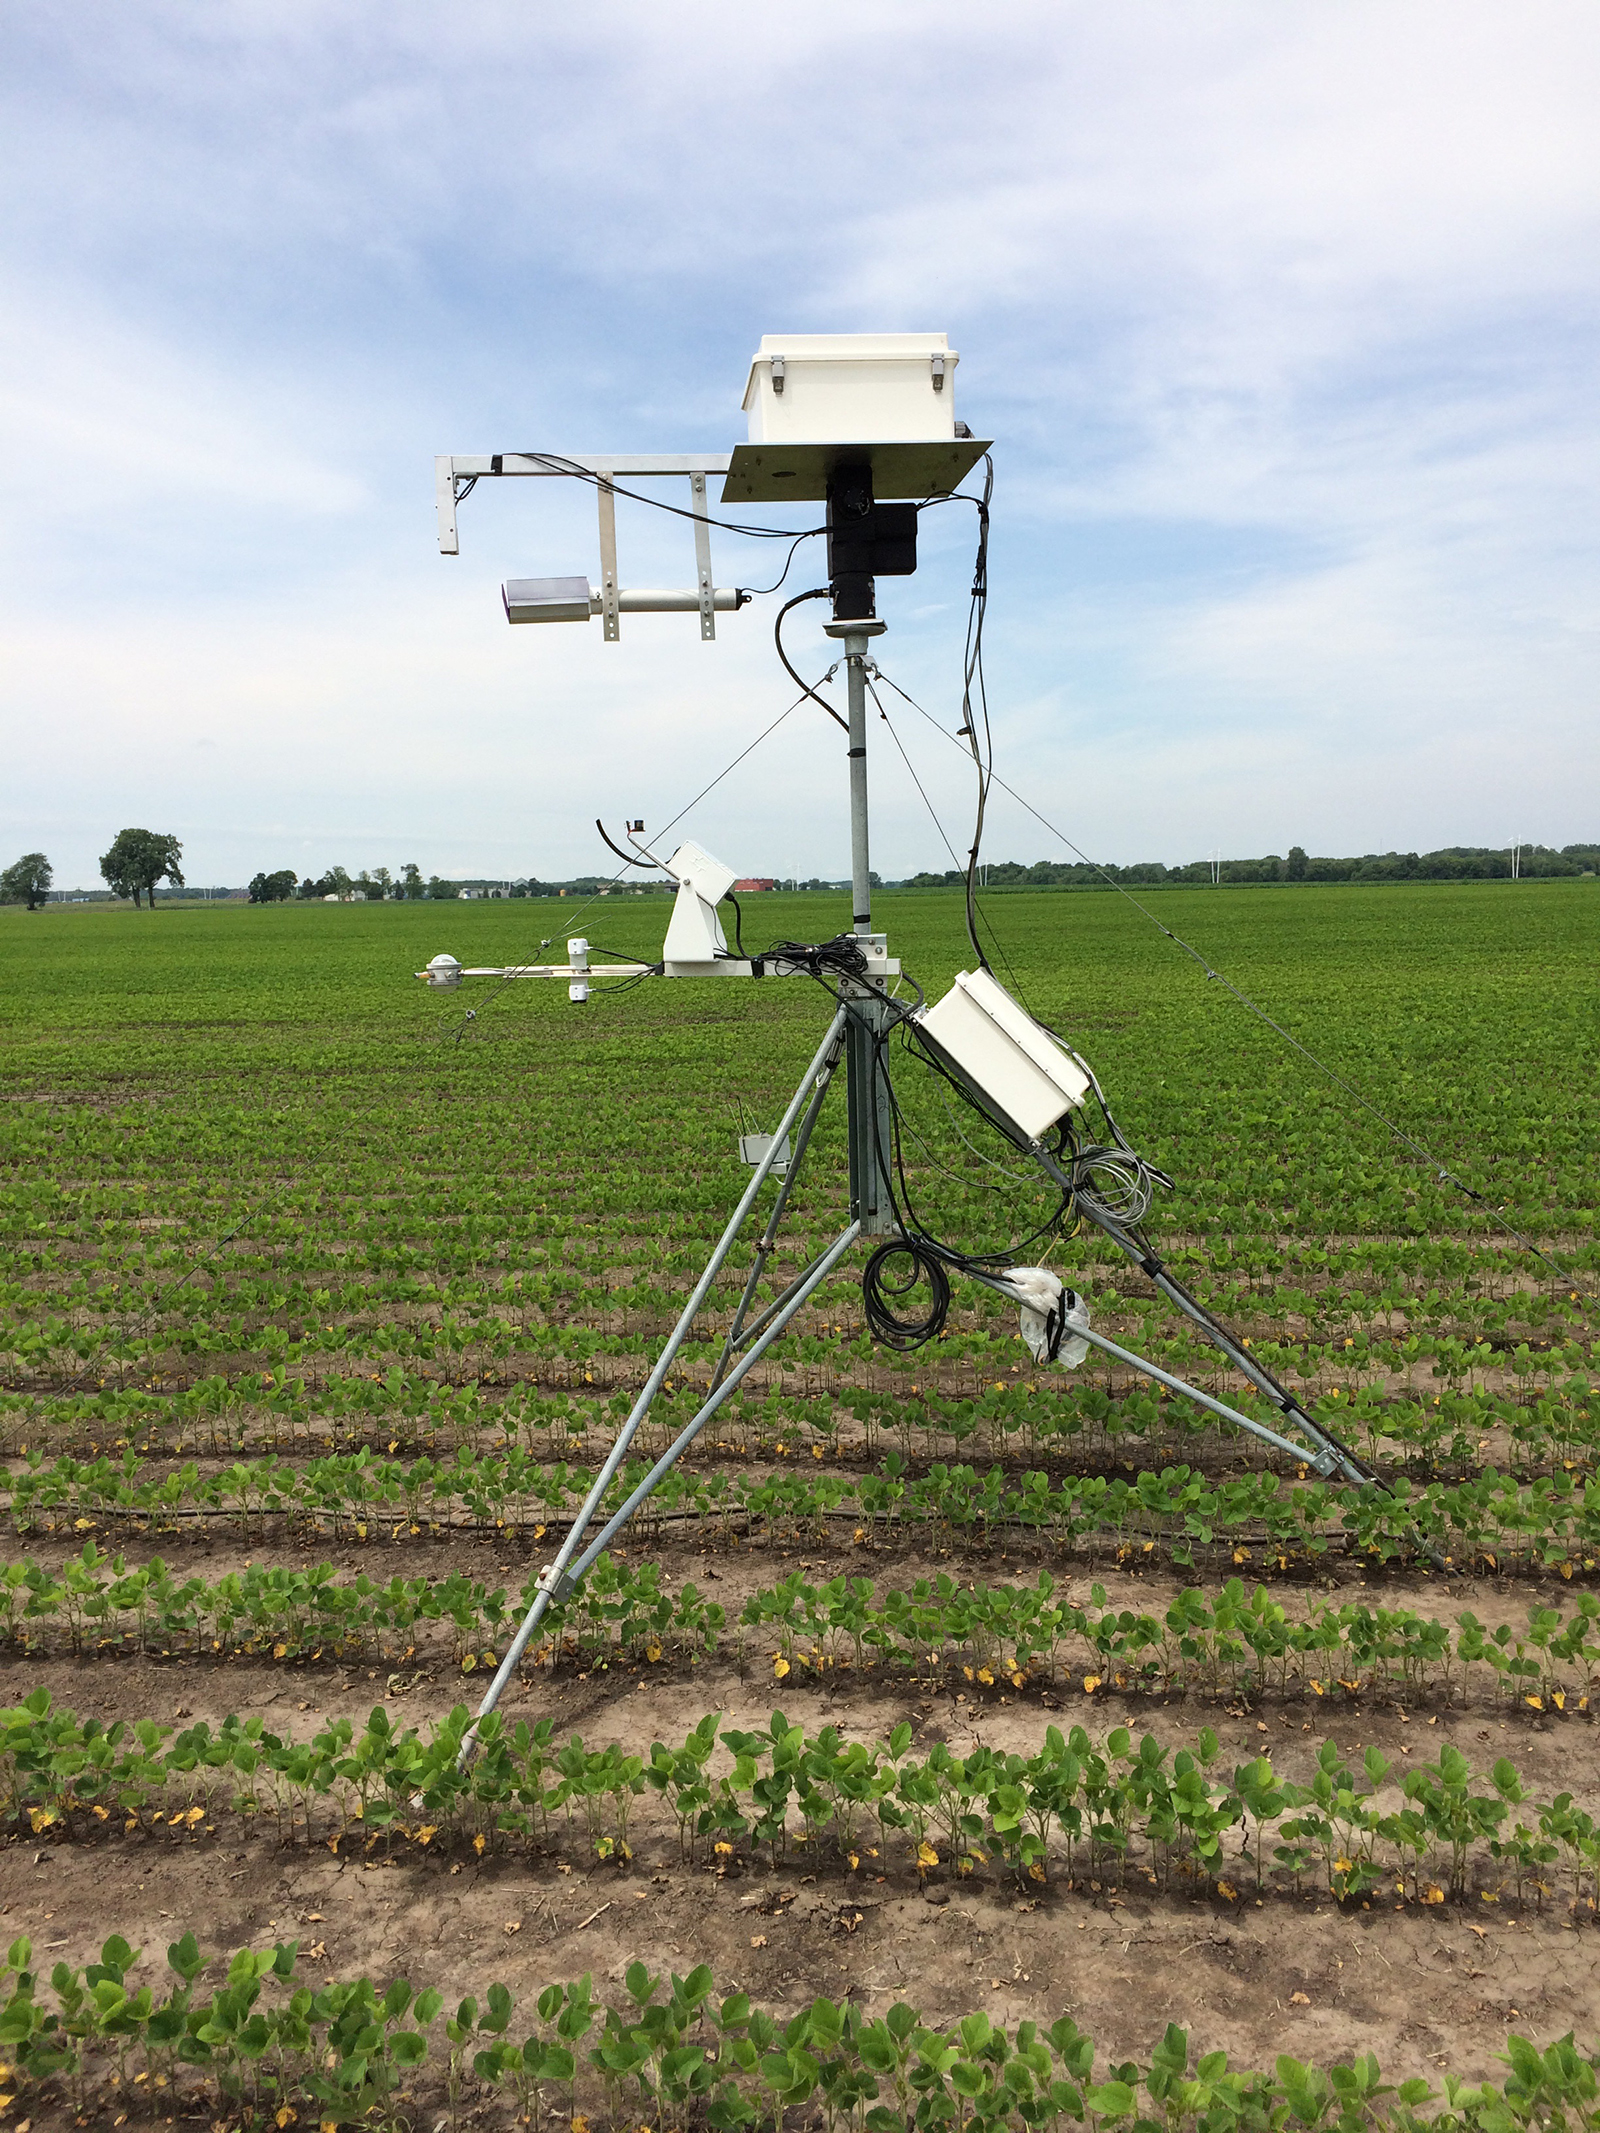 The EcoSpec reflectance sensors in position among young soybean plants at the beginning of the 2015 growing season.